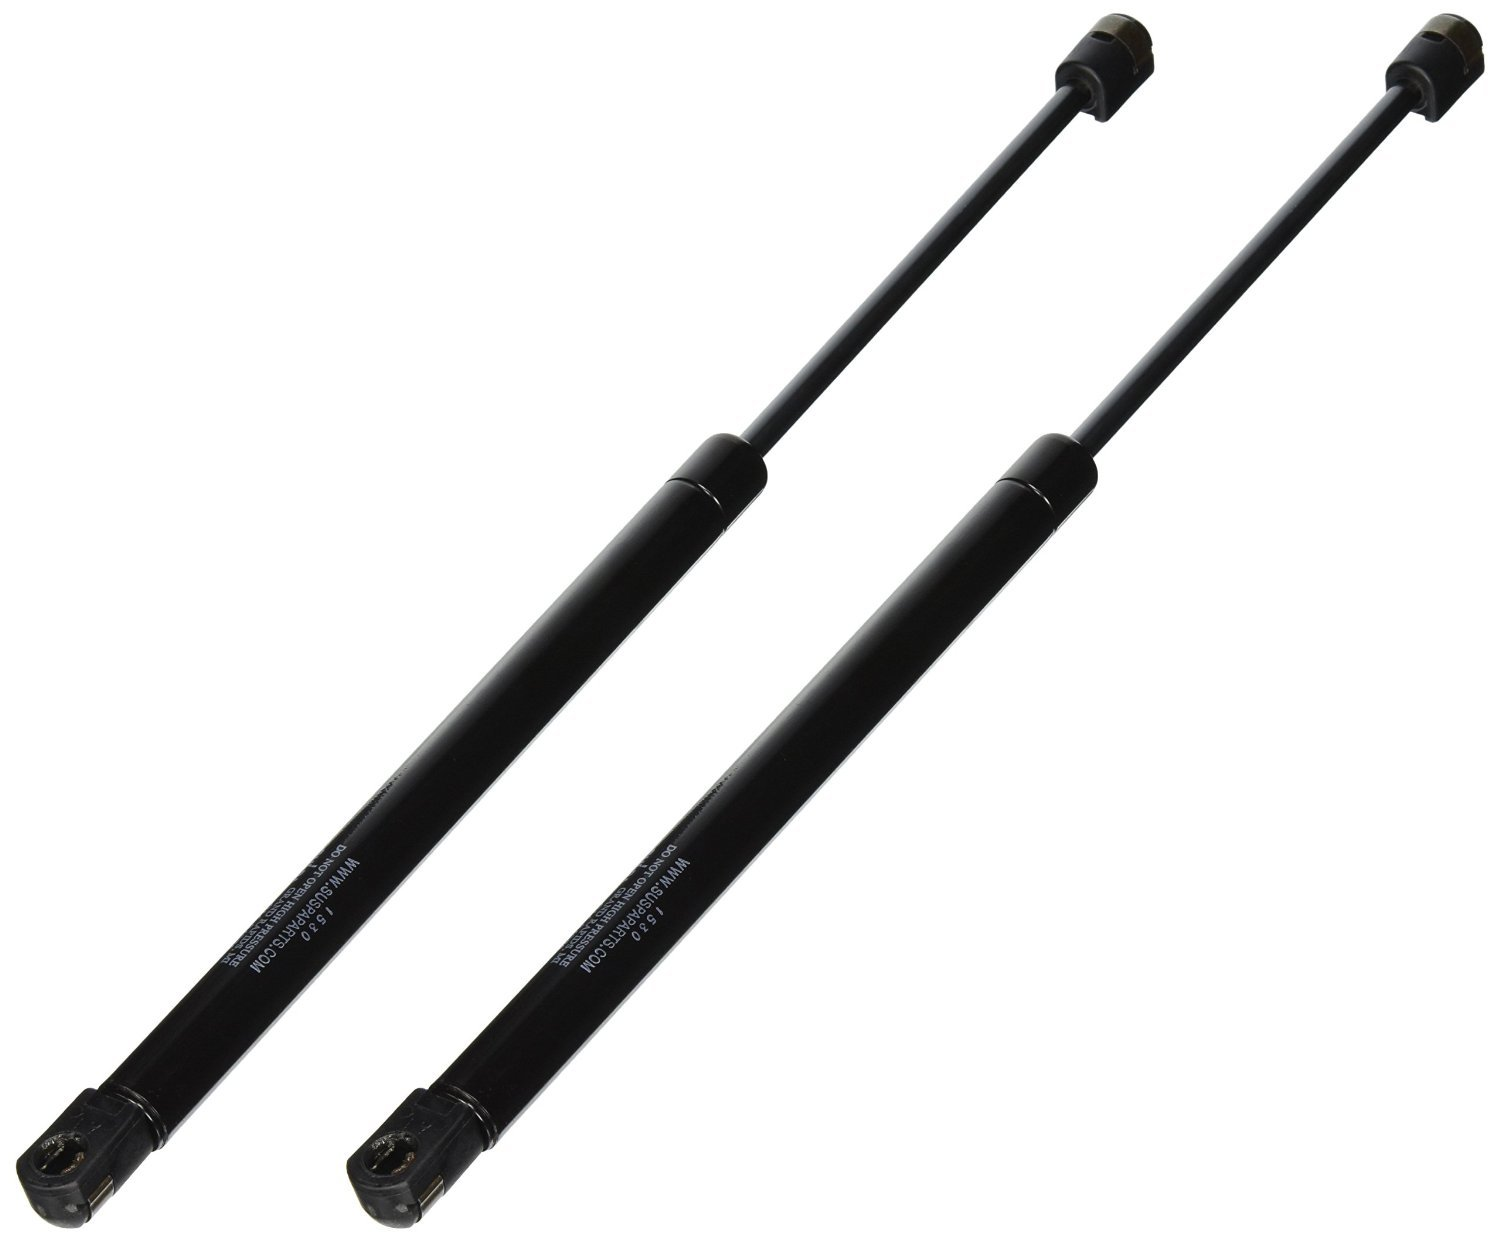 """Suspa C16-15952 35.43"""" Gas Prop/Strut - Set of Two - Force is 40 lbs Per Prop/Strut - Force is 80 lbs Per Pair"""